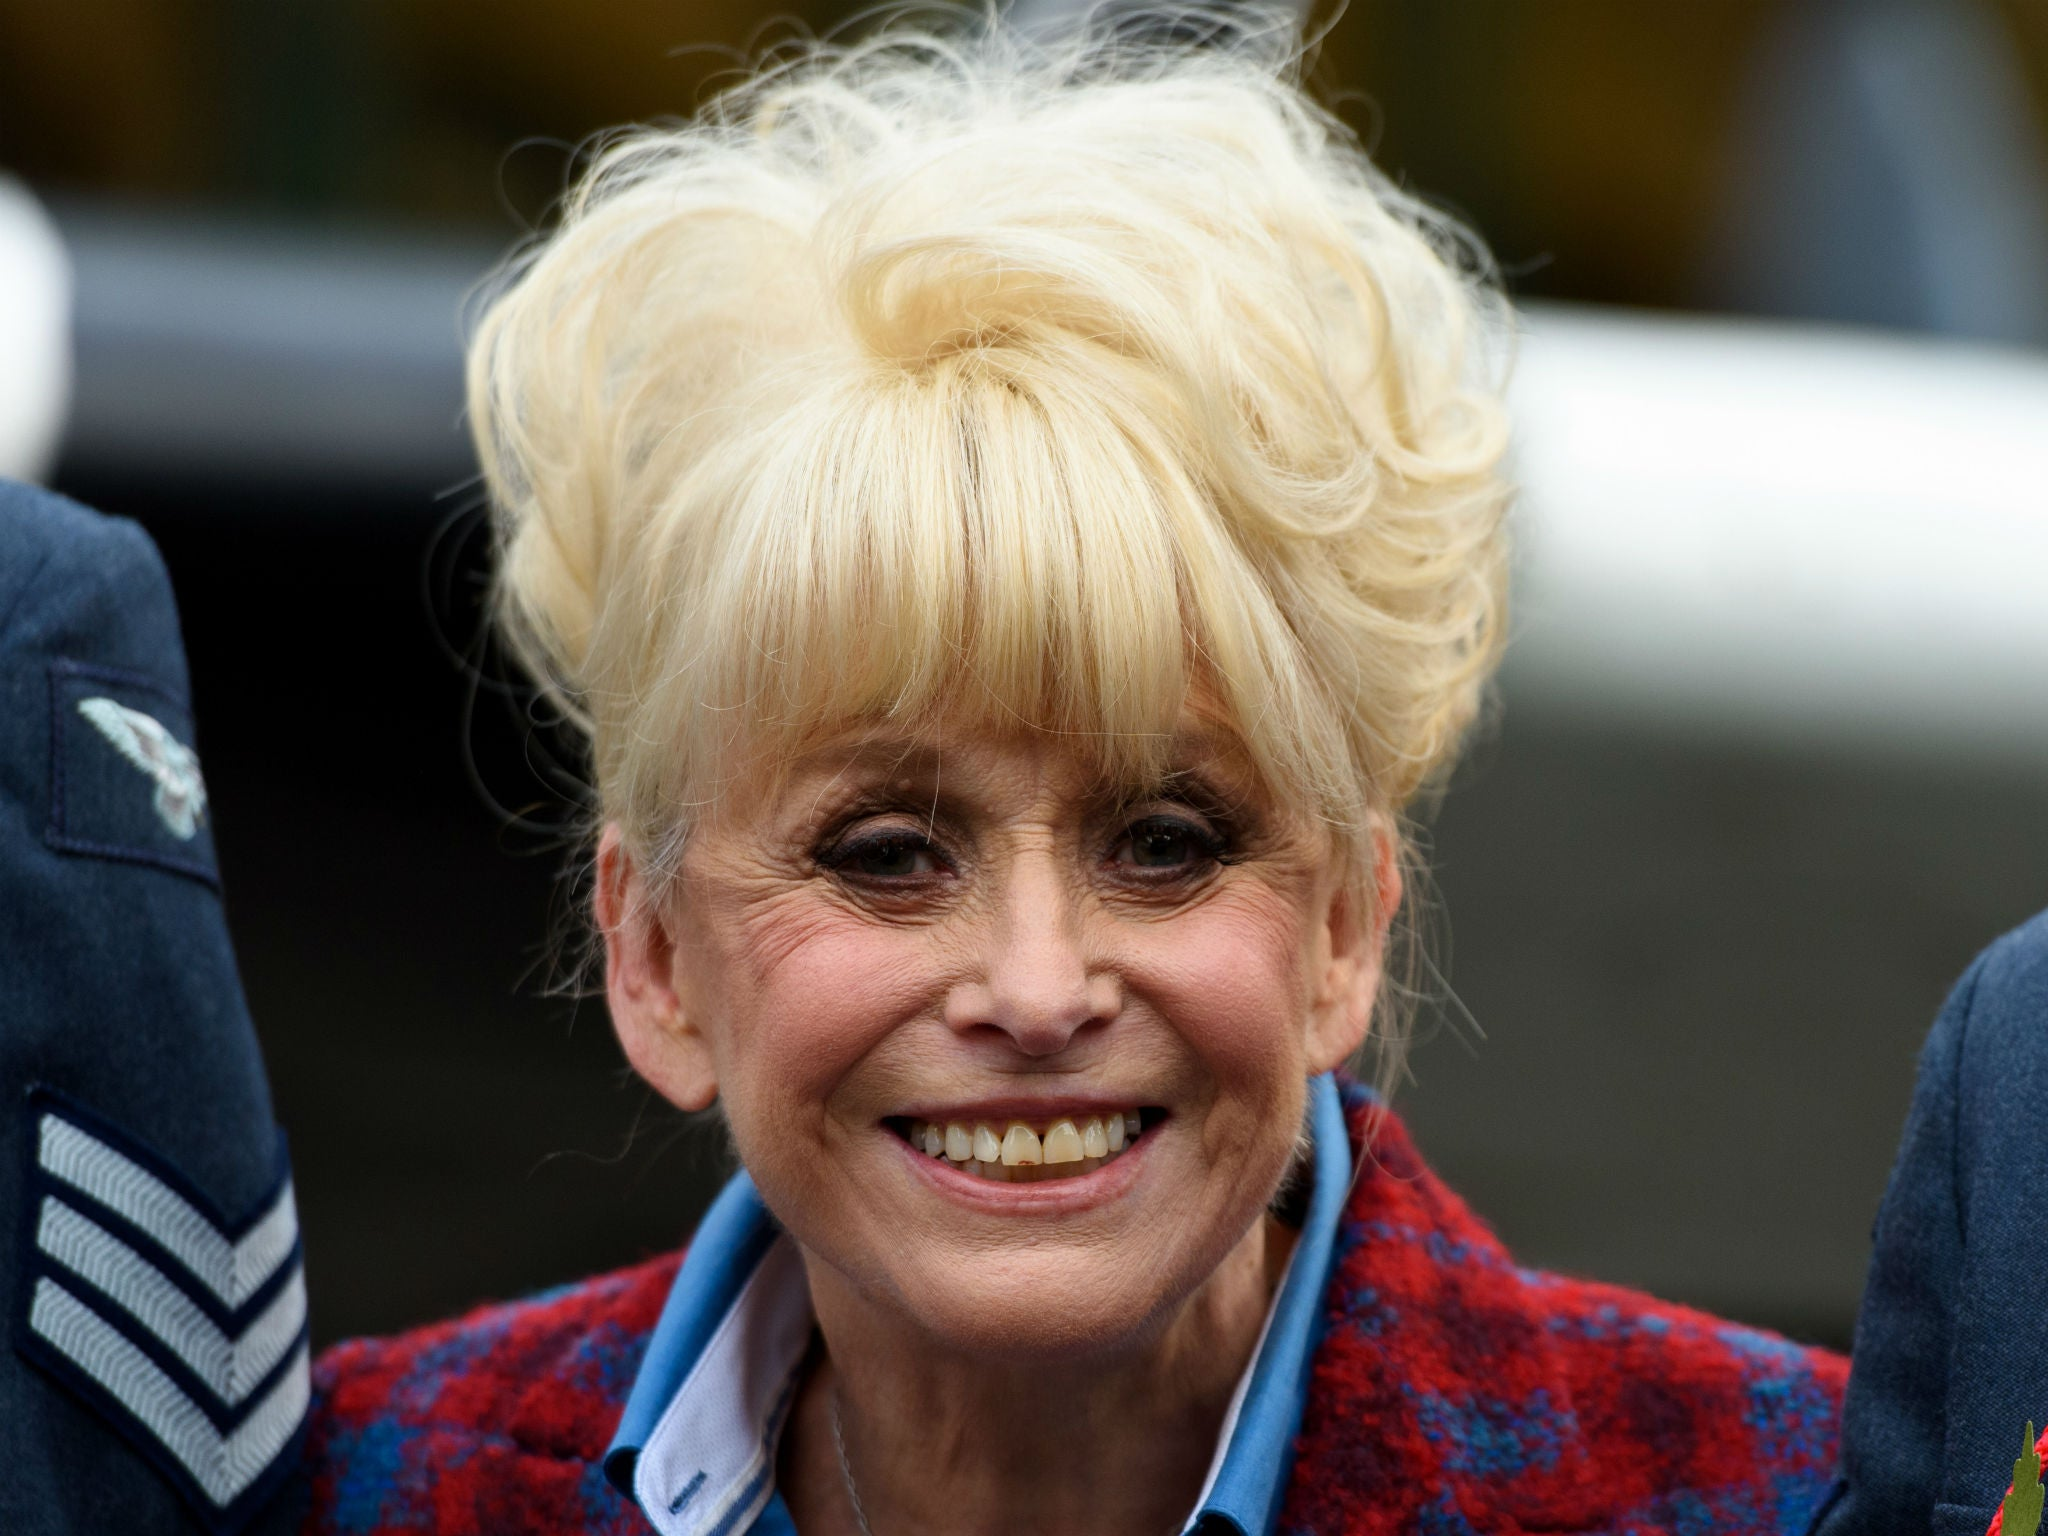 barbara windsor abortions